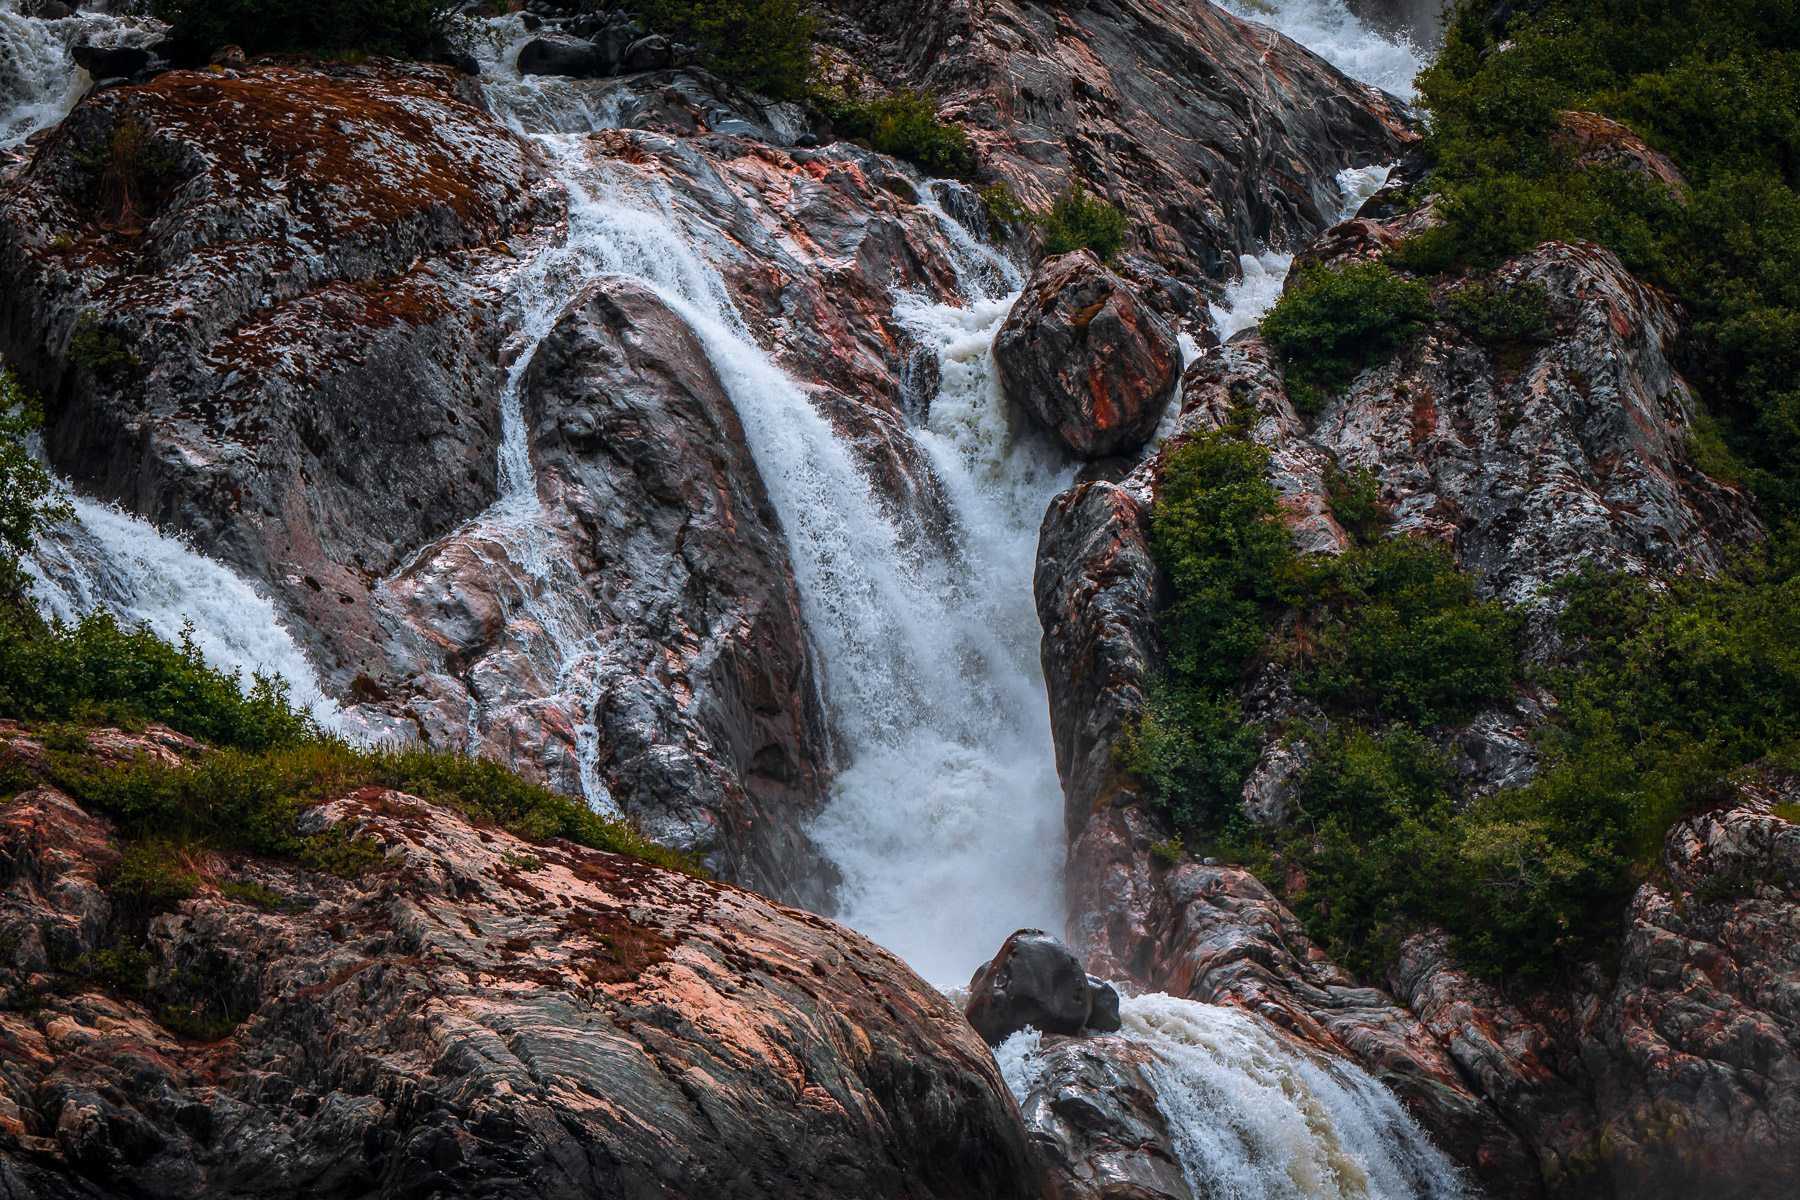 Water pours over rocks along Alaska's Stephens Passage near Juneau.